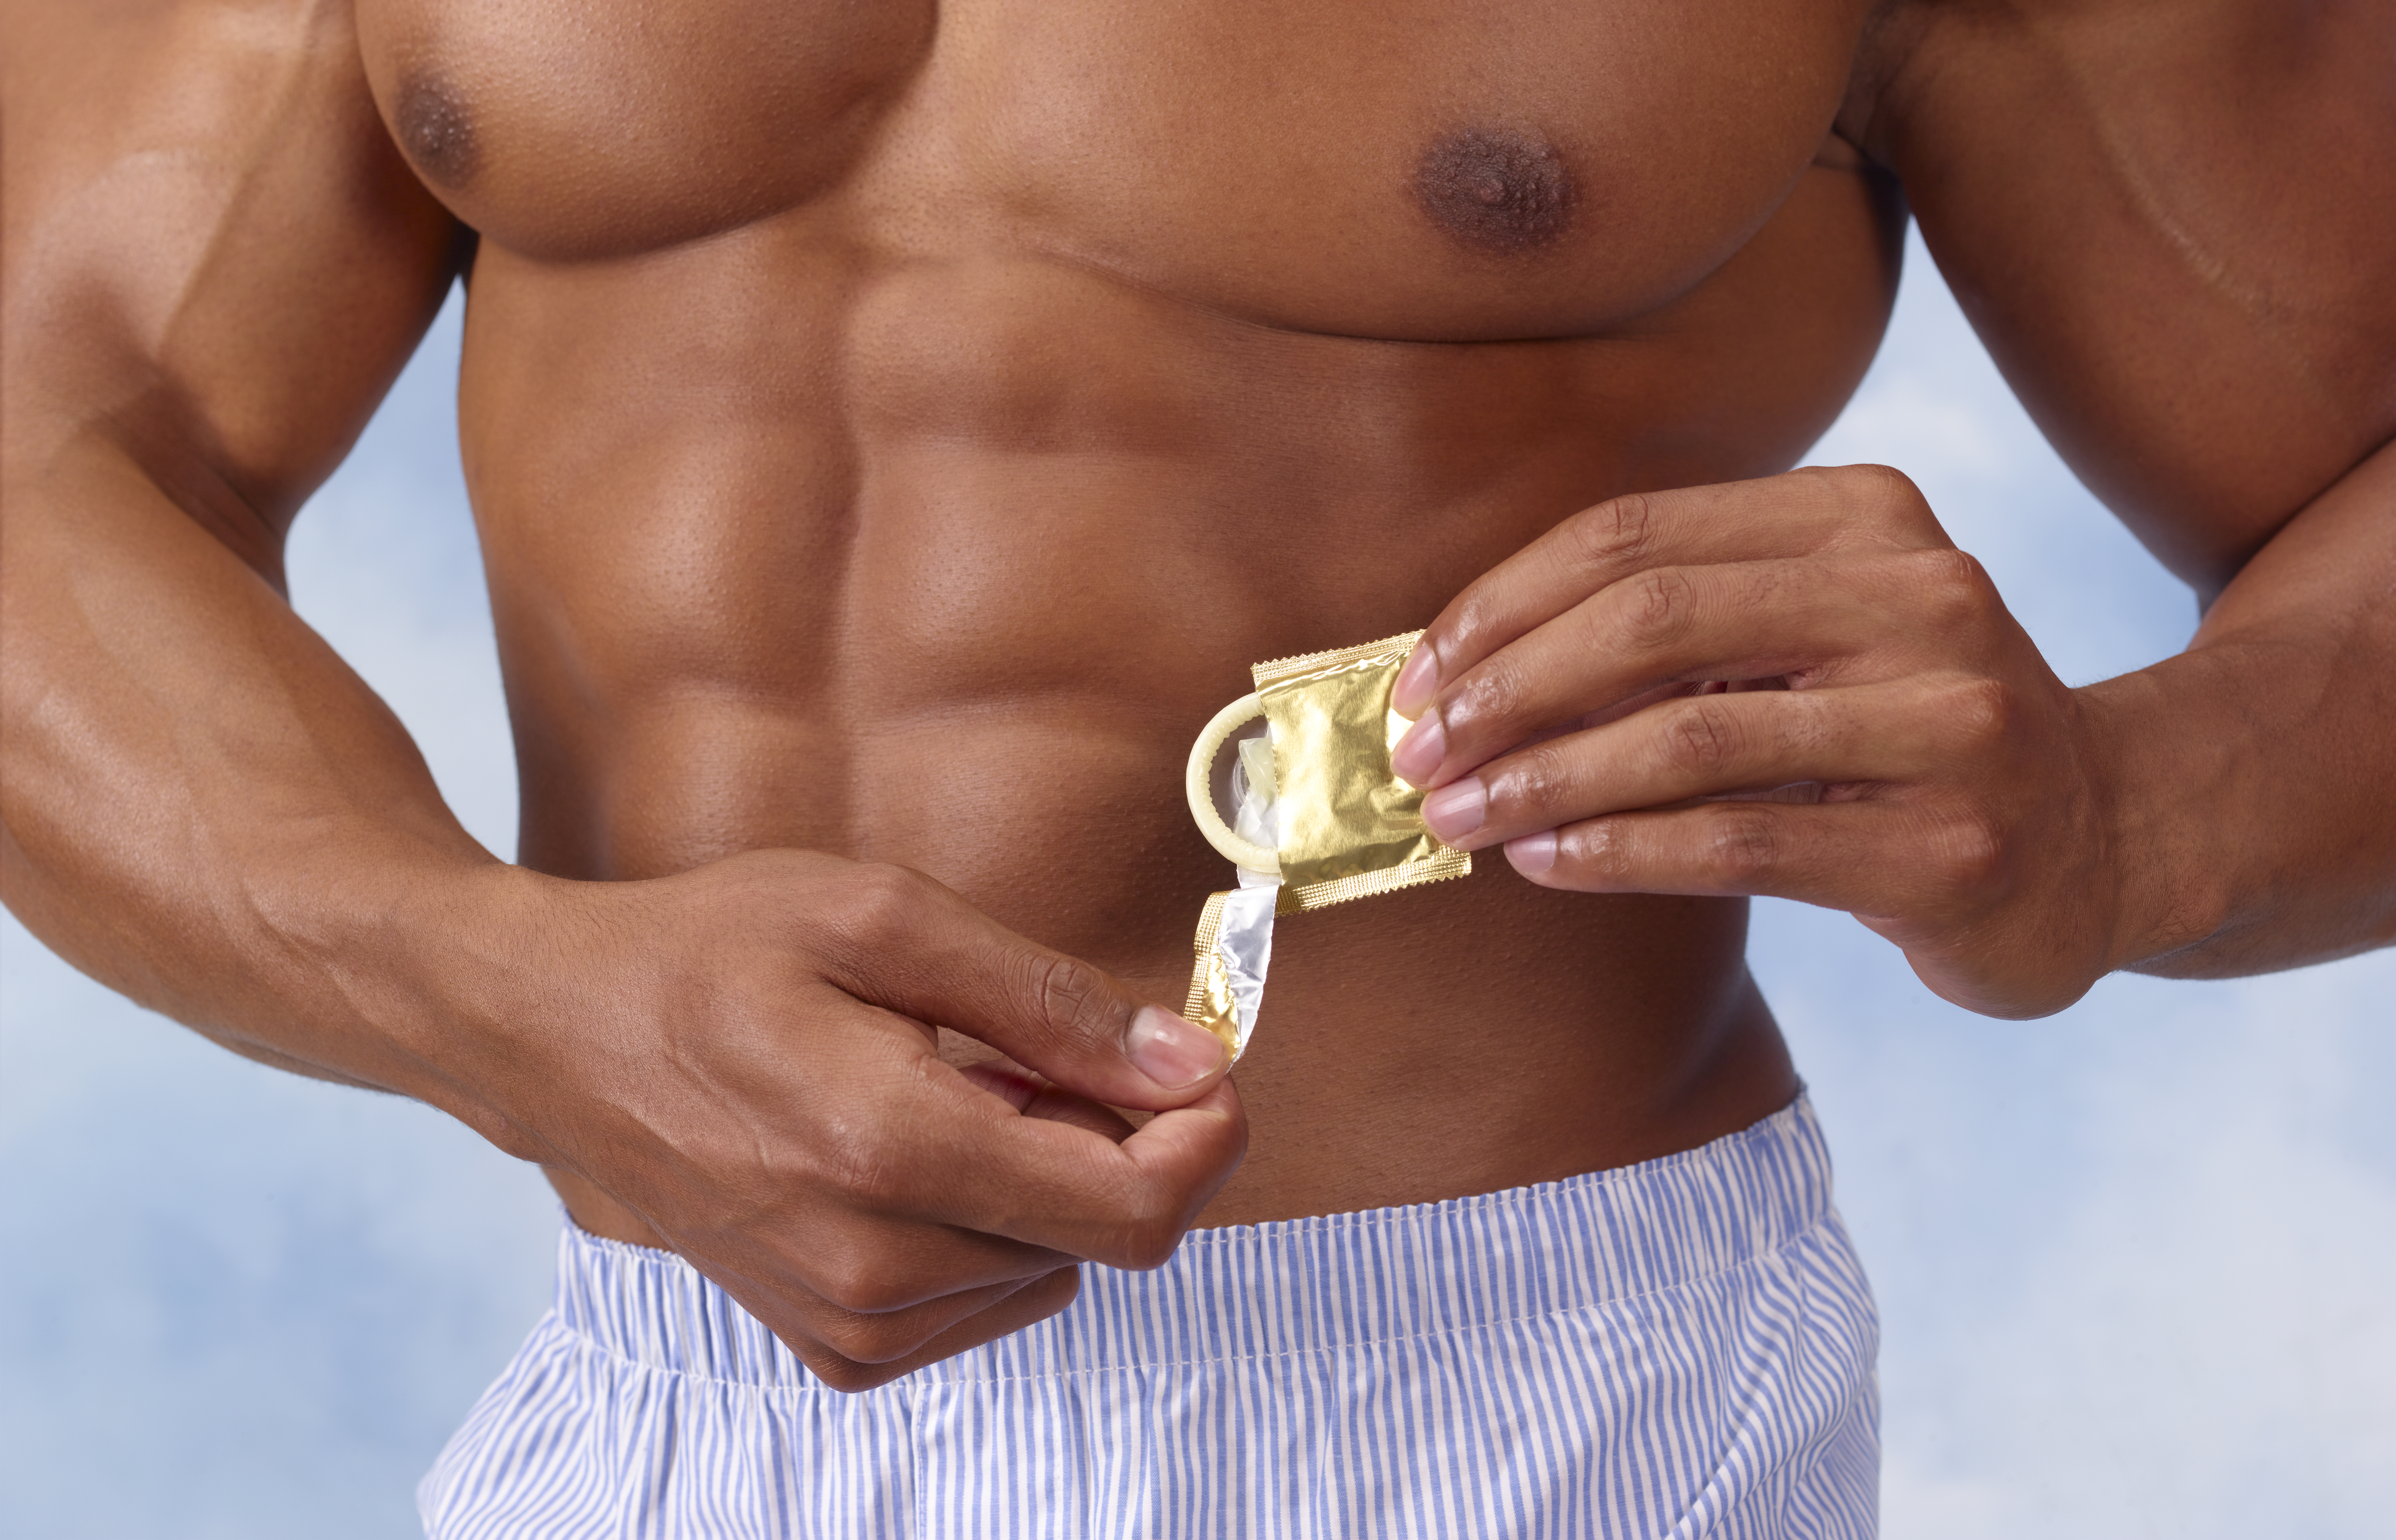 muscular man opening condom packet